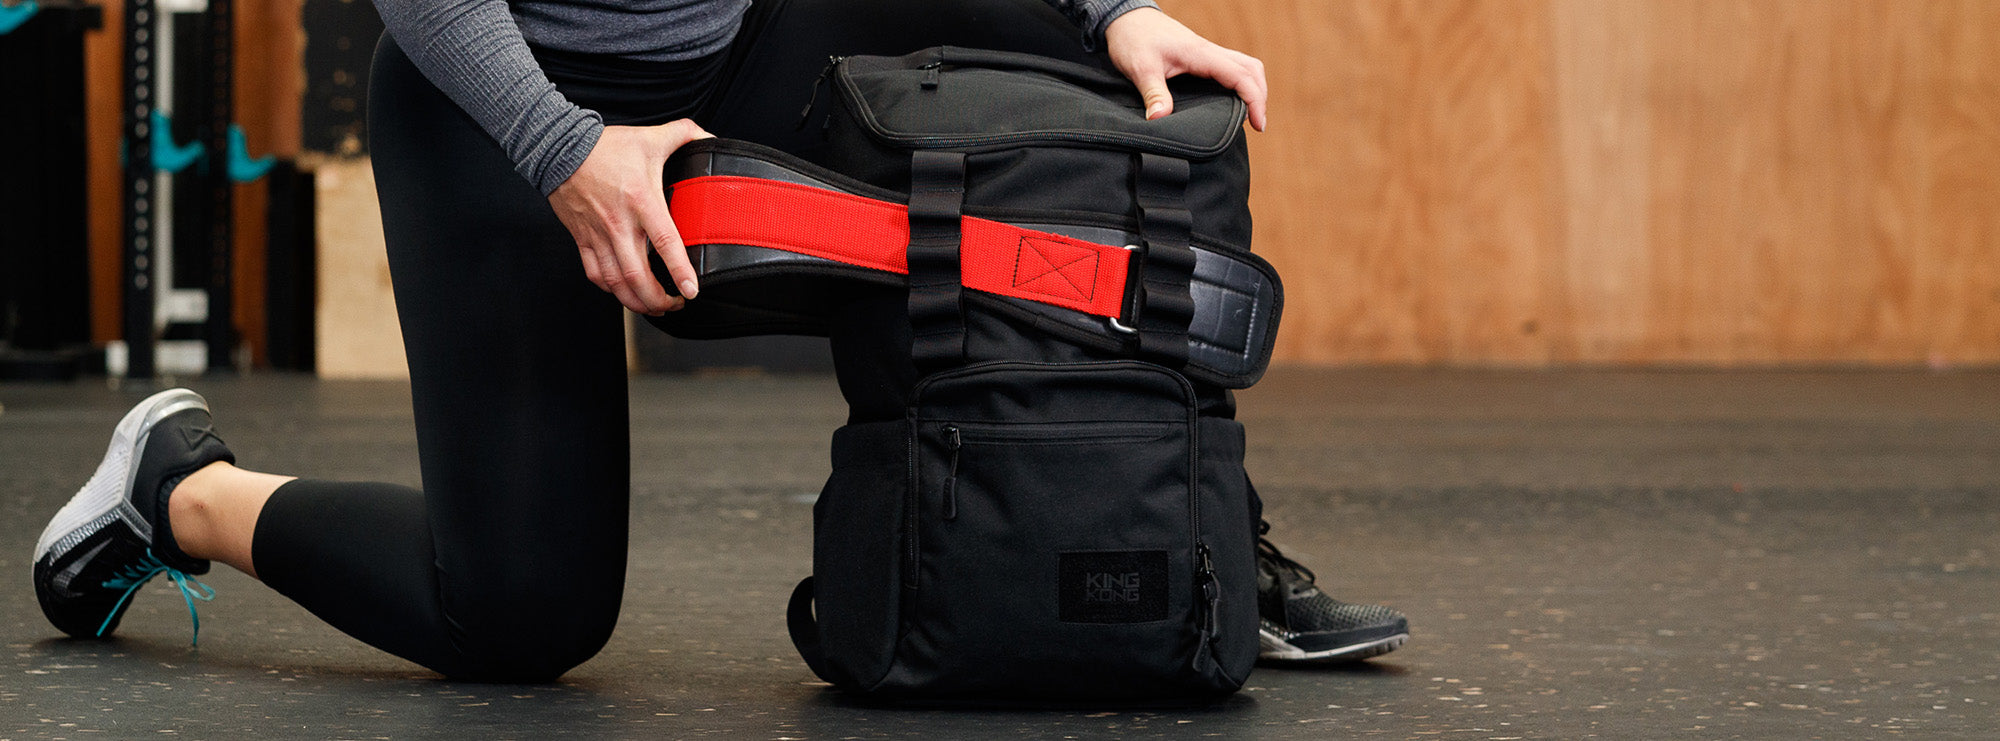 Gym backpack with weightlifting belt attachment